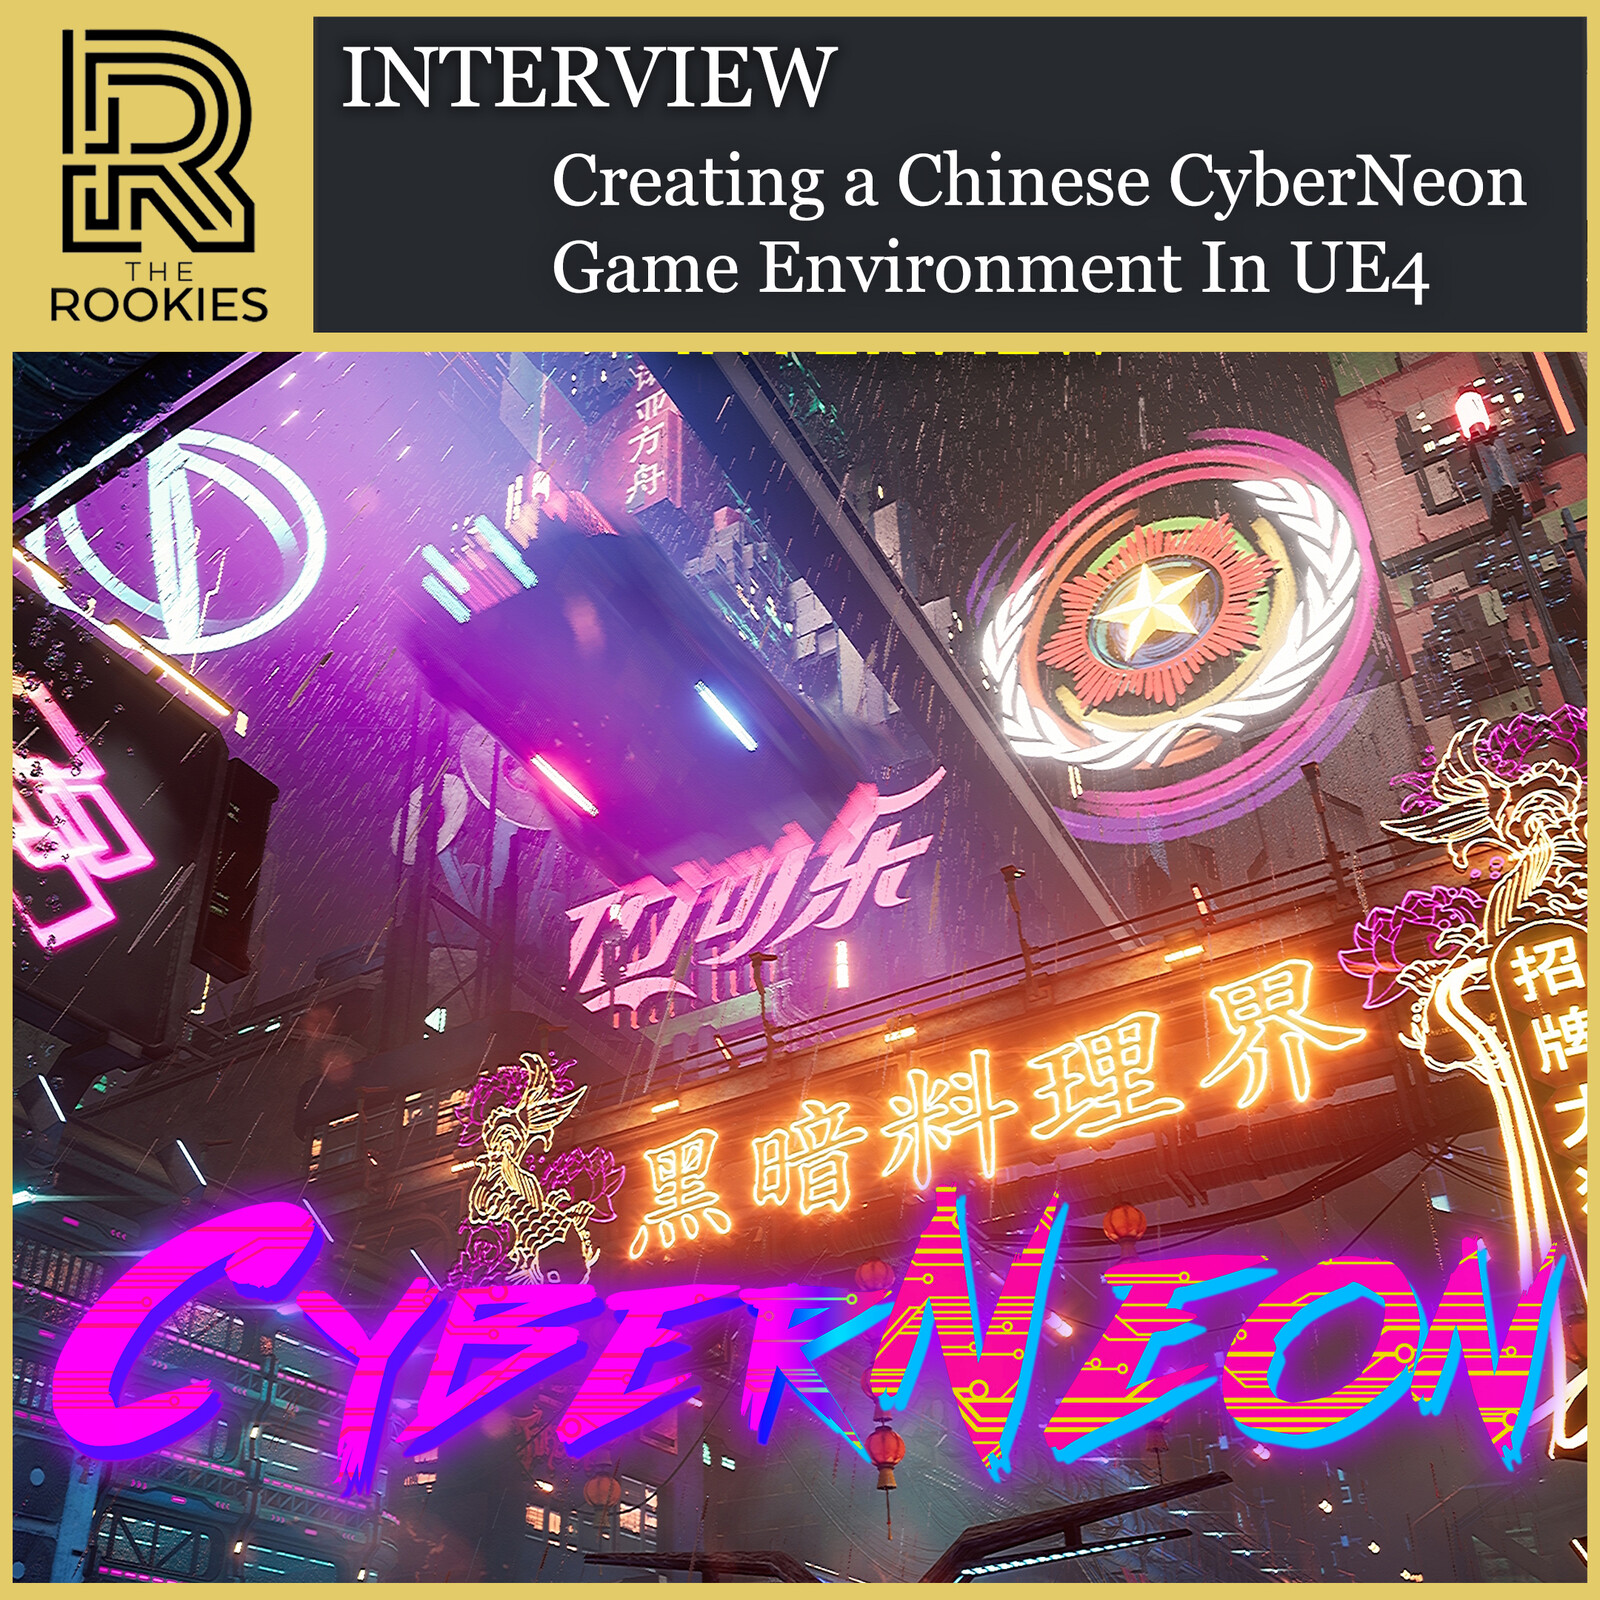 The Rookies Breakdown Article - Creating a Chinese CyberNeon Game Environment In UE4